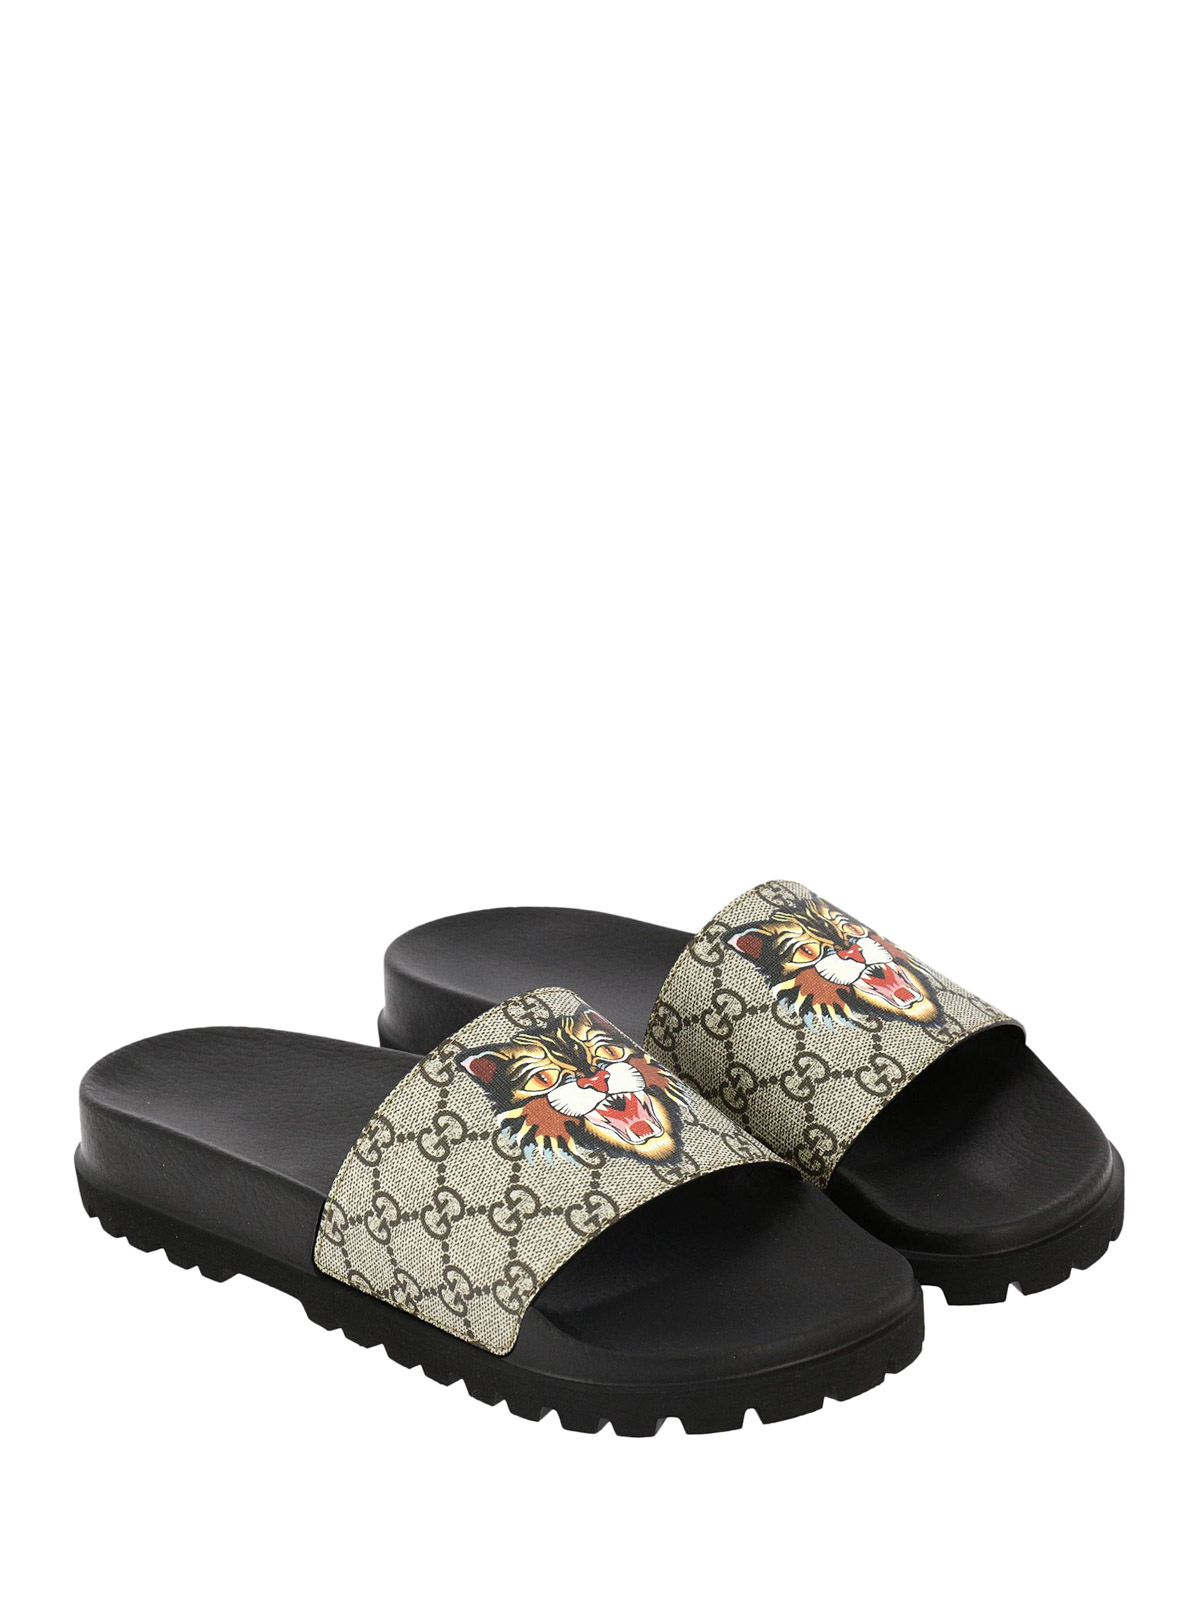 Gucci Sandals Online Angry Cat Gg Supreme Slides